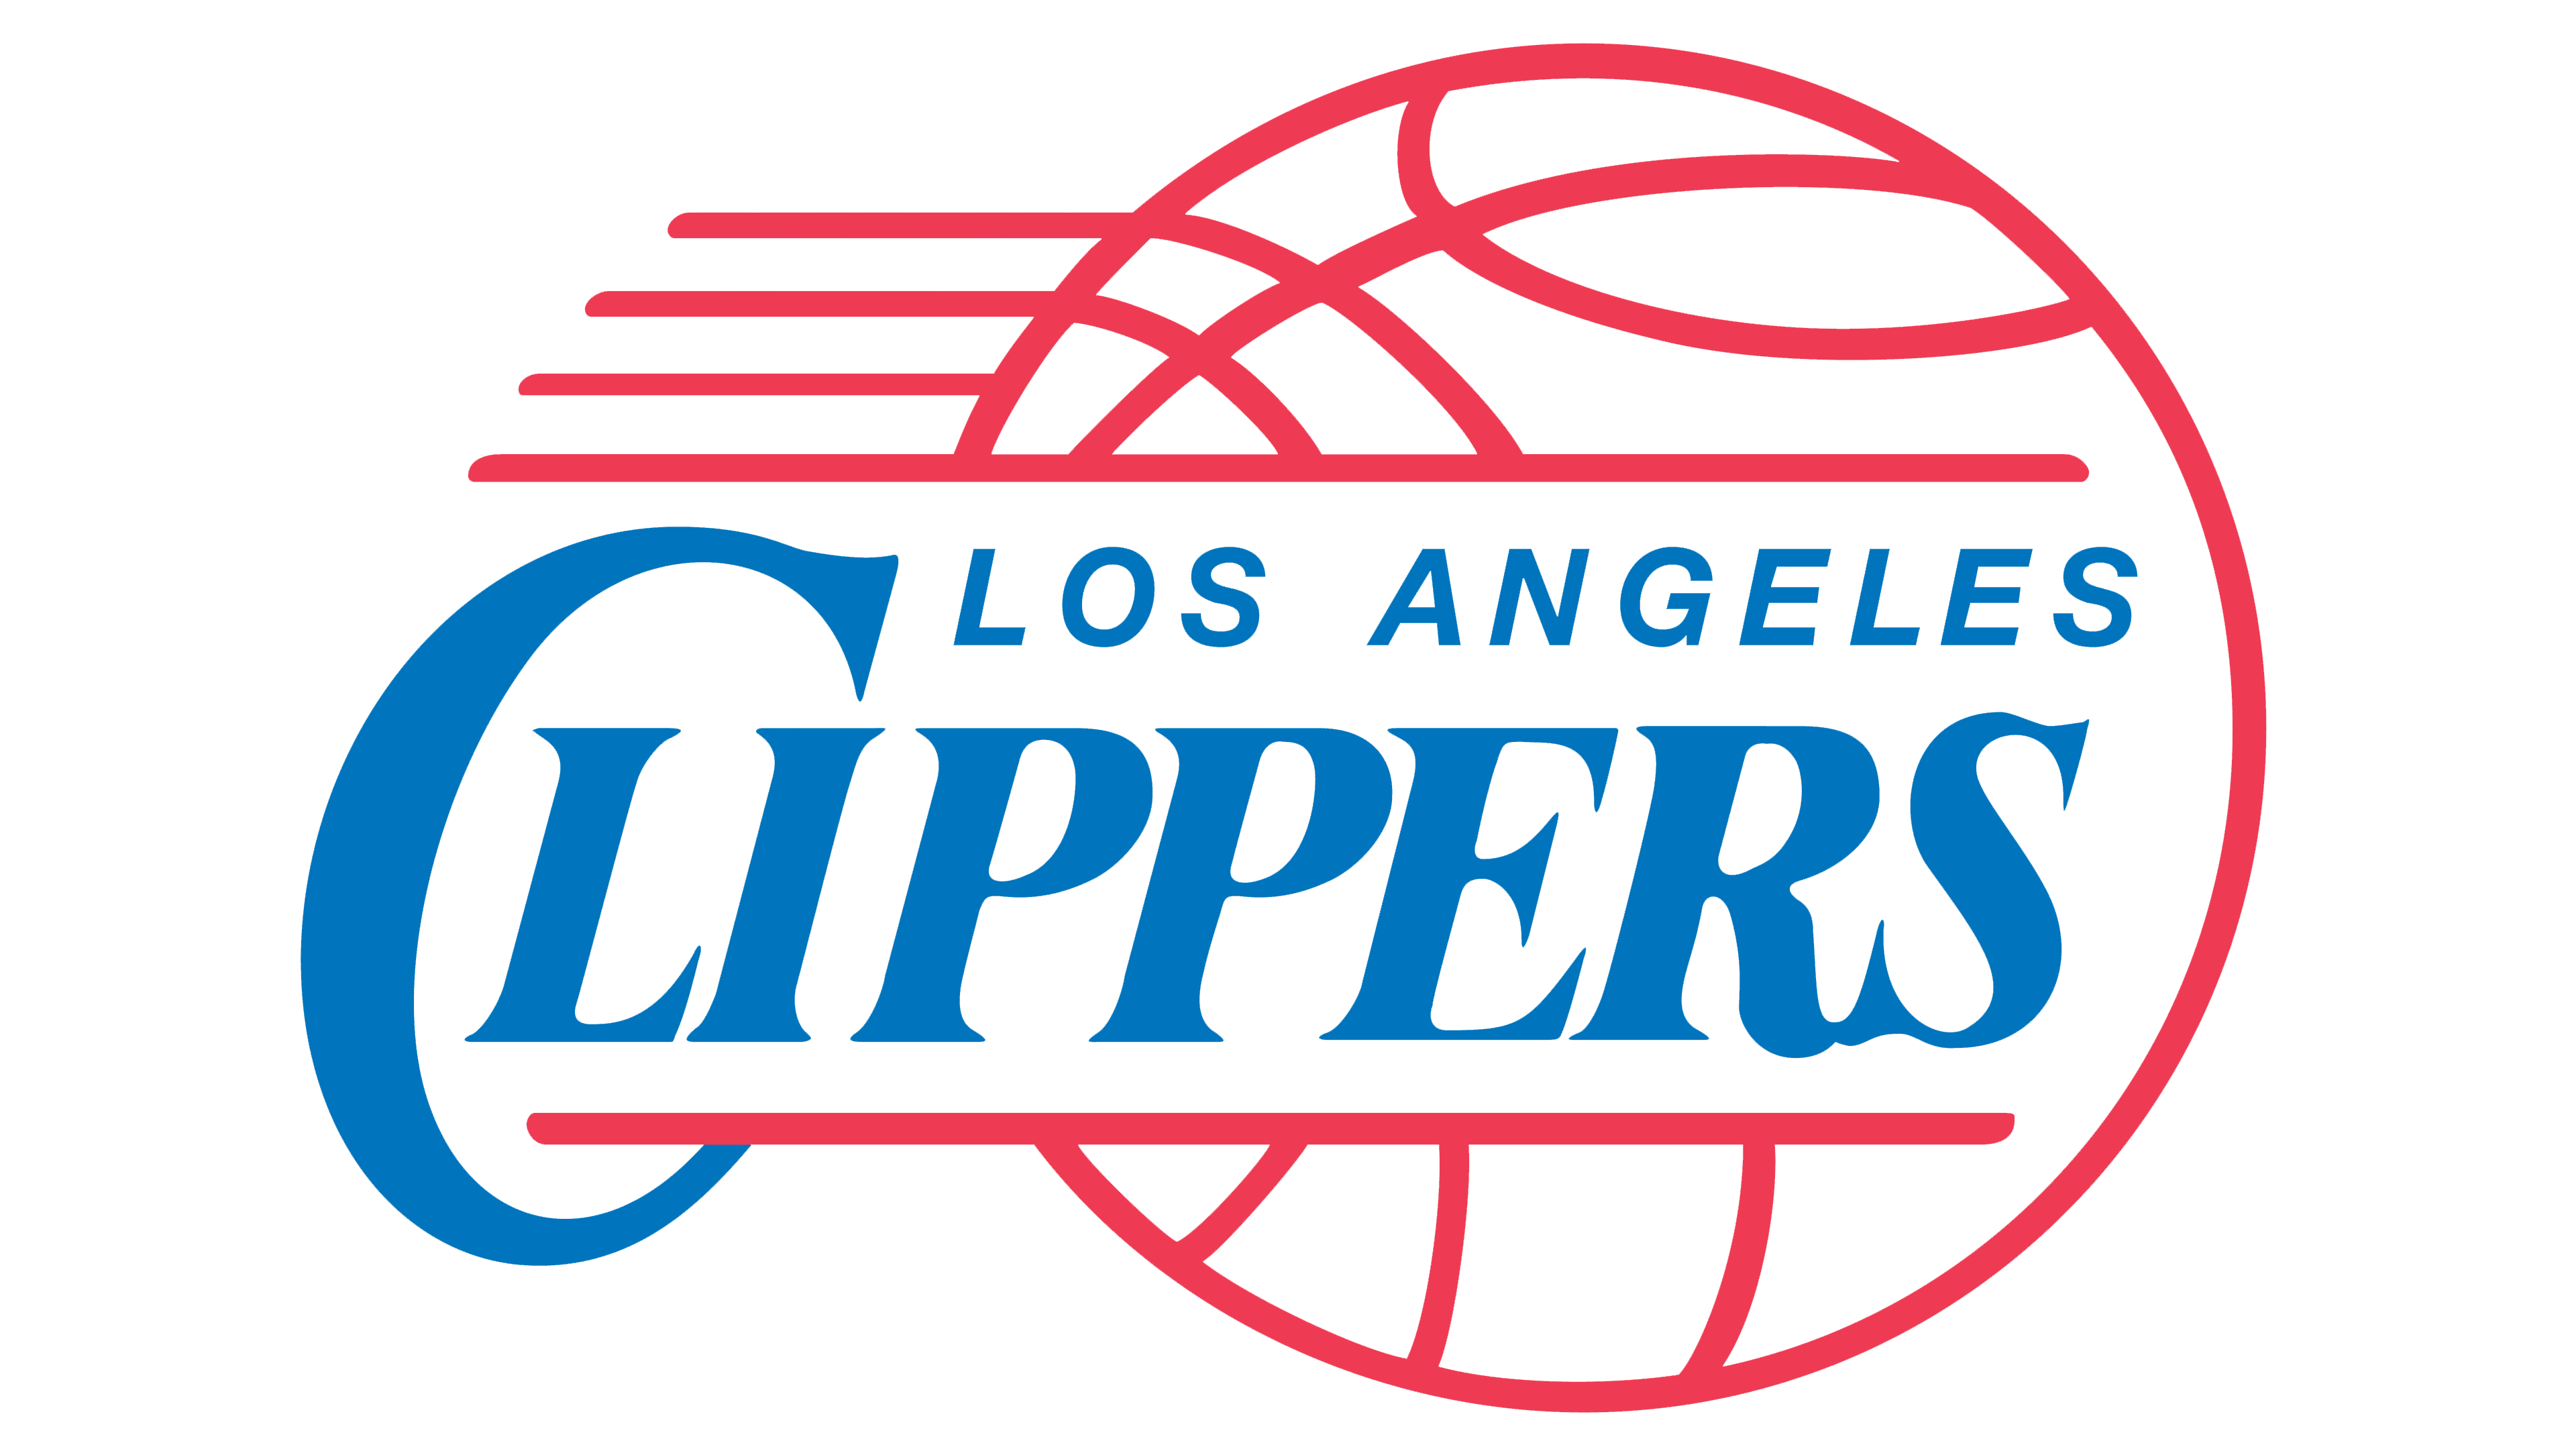 Los Angeles Clippers Logo | Symbol, History, PNG (3840*2160)